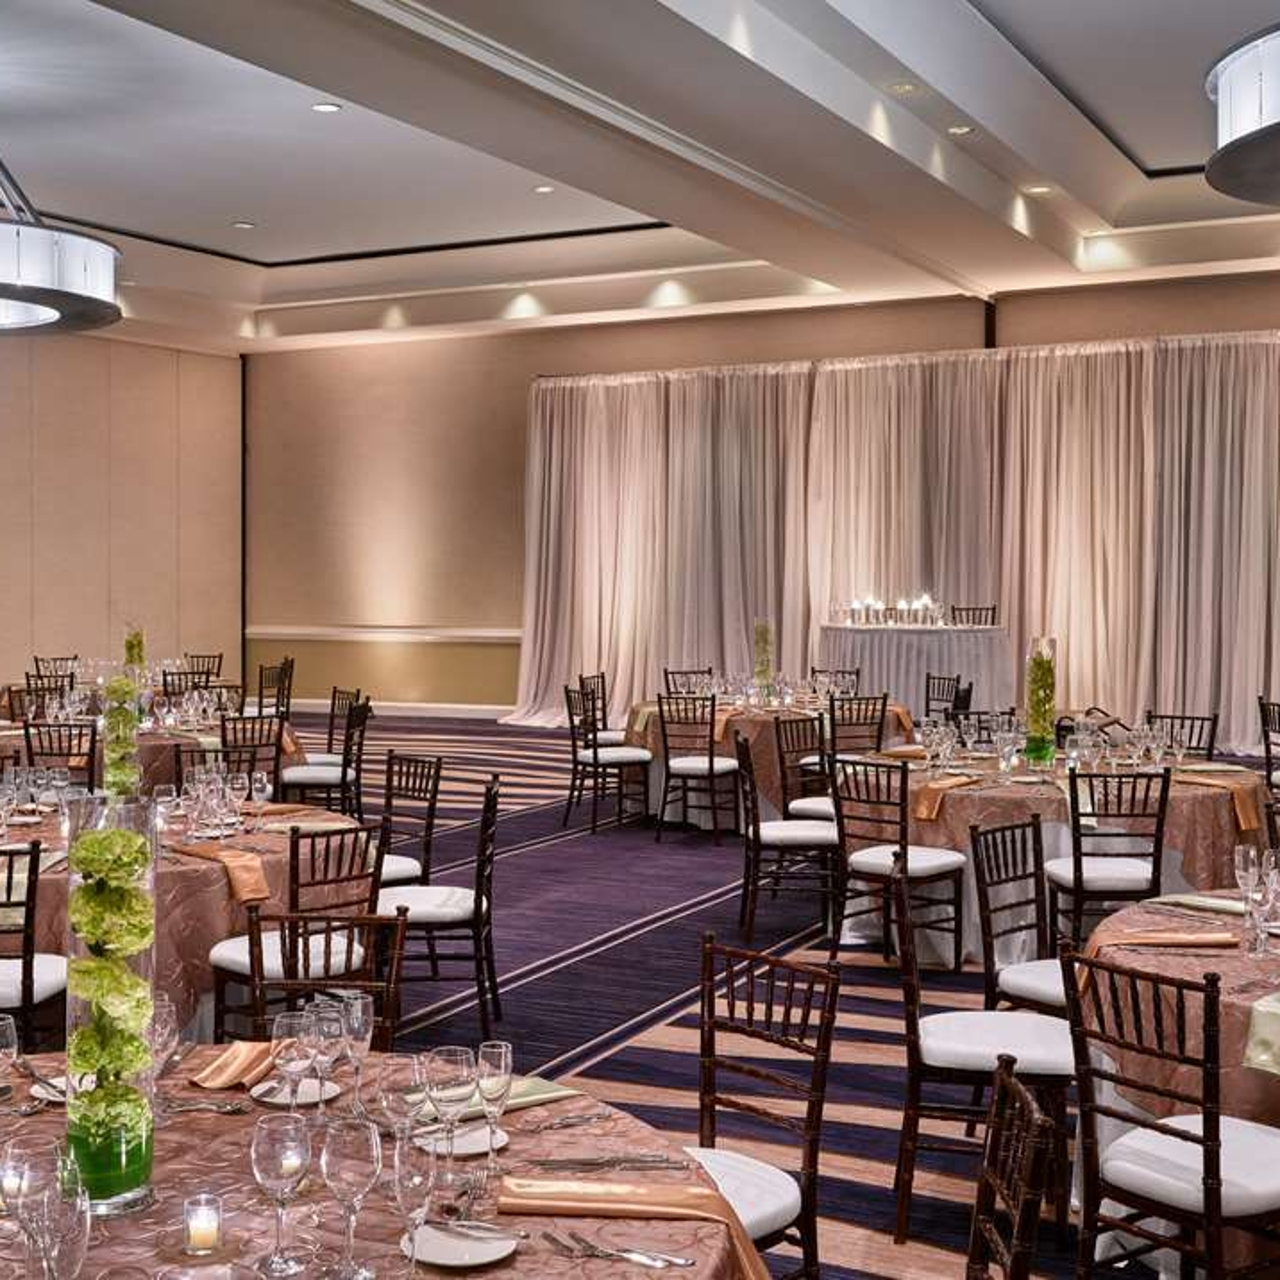 The Westshore Grand A Tribute Portfolio Hotel Tampa United States Of America At Hrs With Free Services